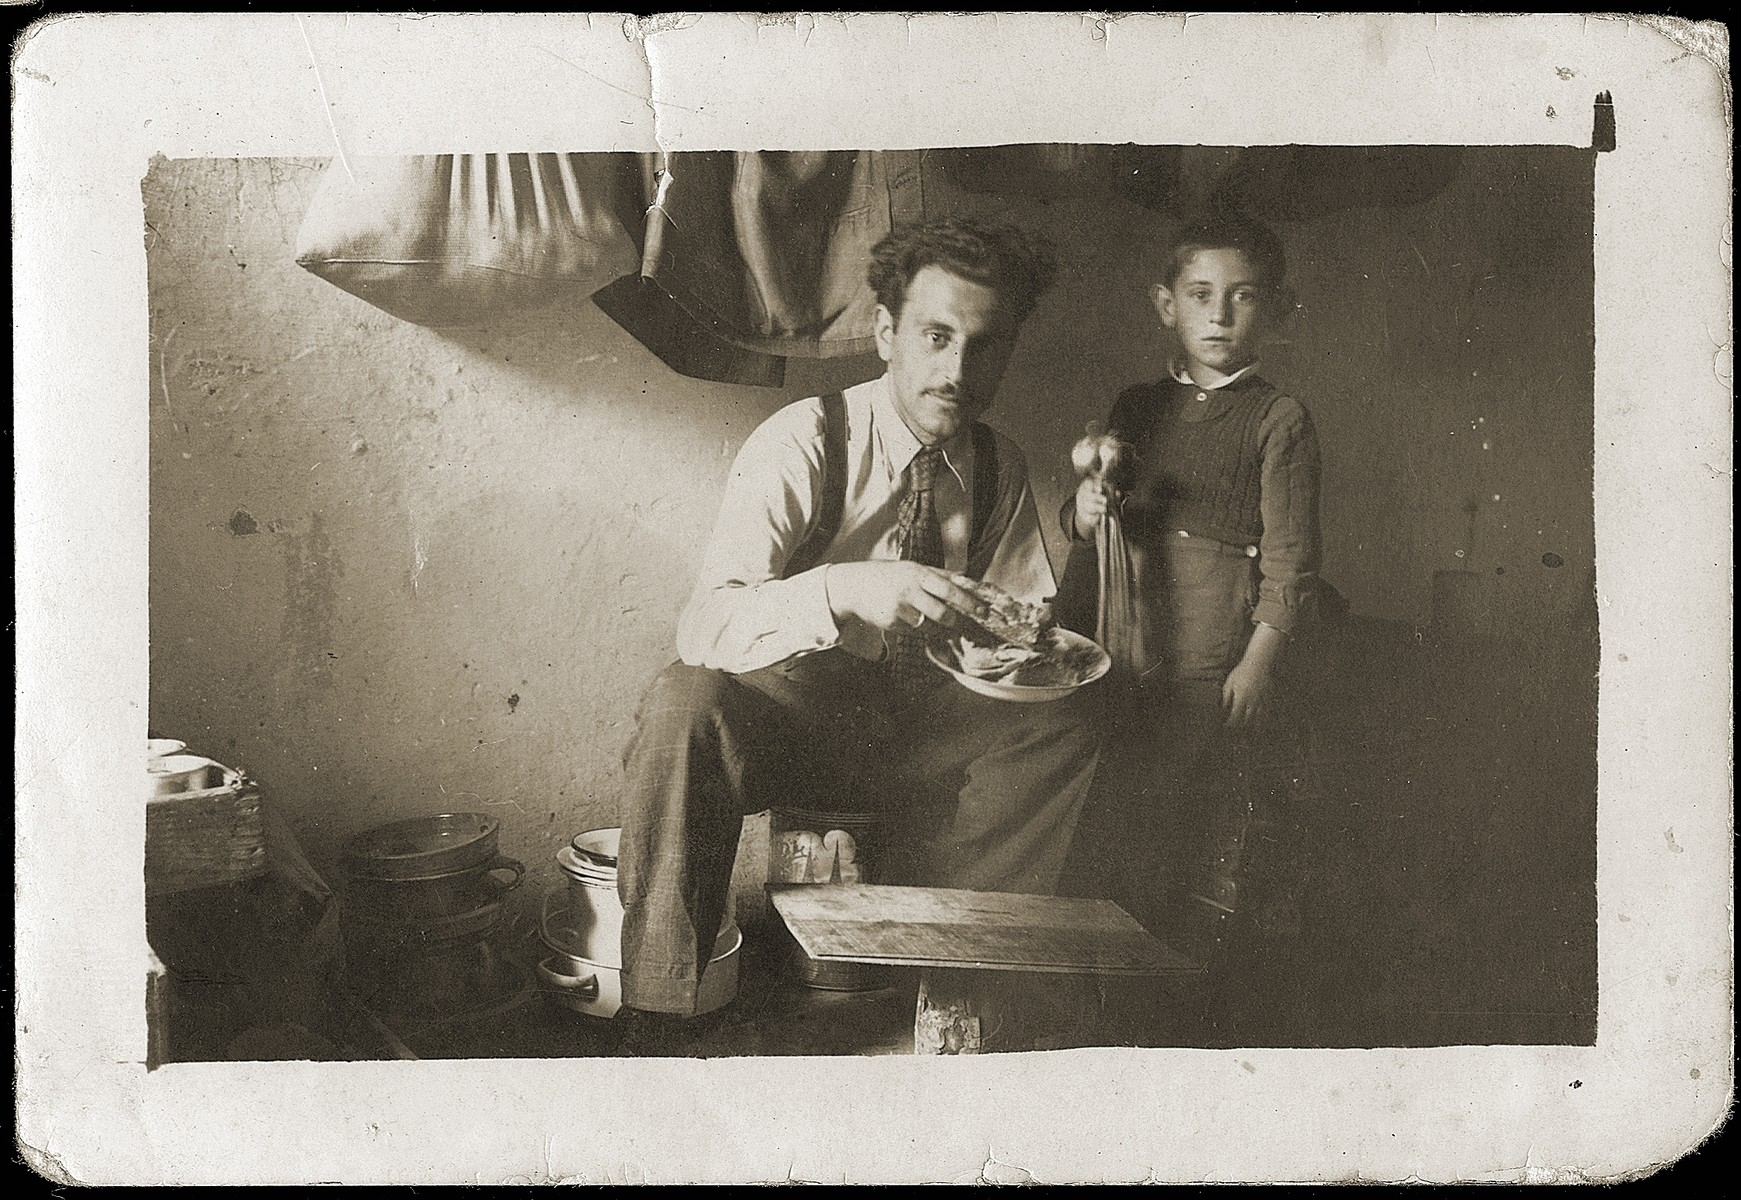 Mosa Mandil, a Jewish refugee from Serbia, poses with his son Gavra in the prison cell in which they are living in Italian-occupied Pristina.